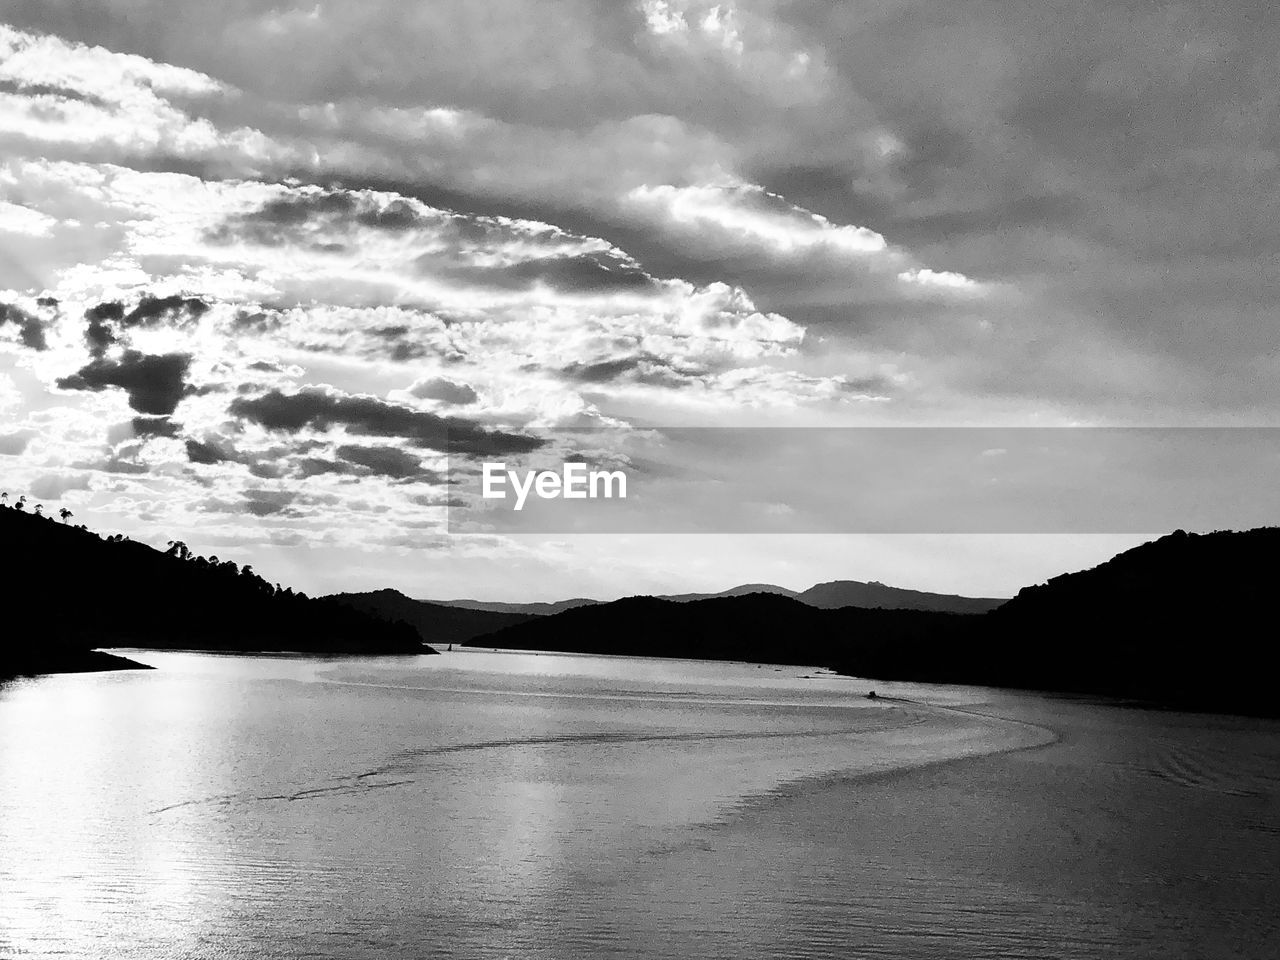 sky, cloud - sky, water, beauty in nature, scenics - nature, tranquil scene, tranquility, mountain, nature, beach, land, sea, no people, non-urban scene, day, silhouette, outdoors, environment